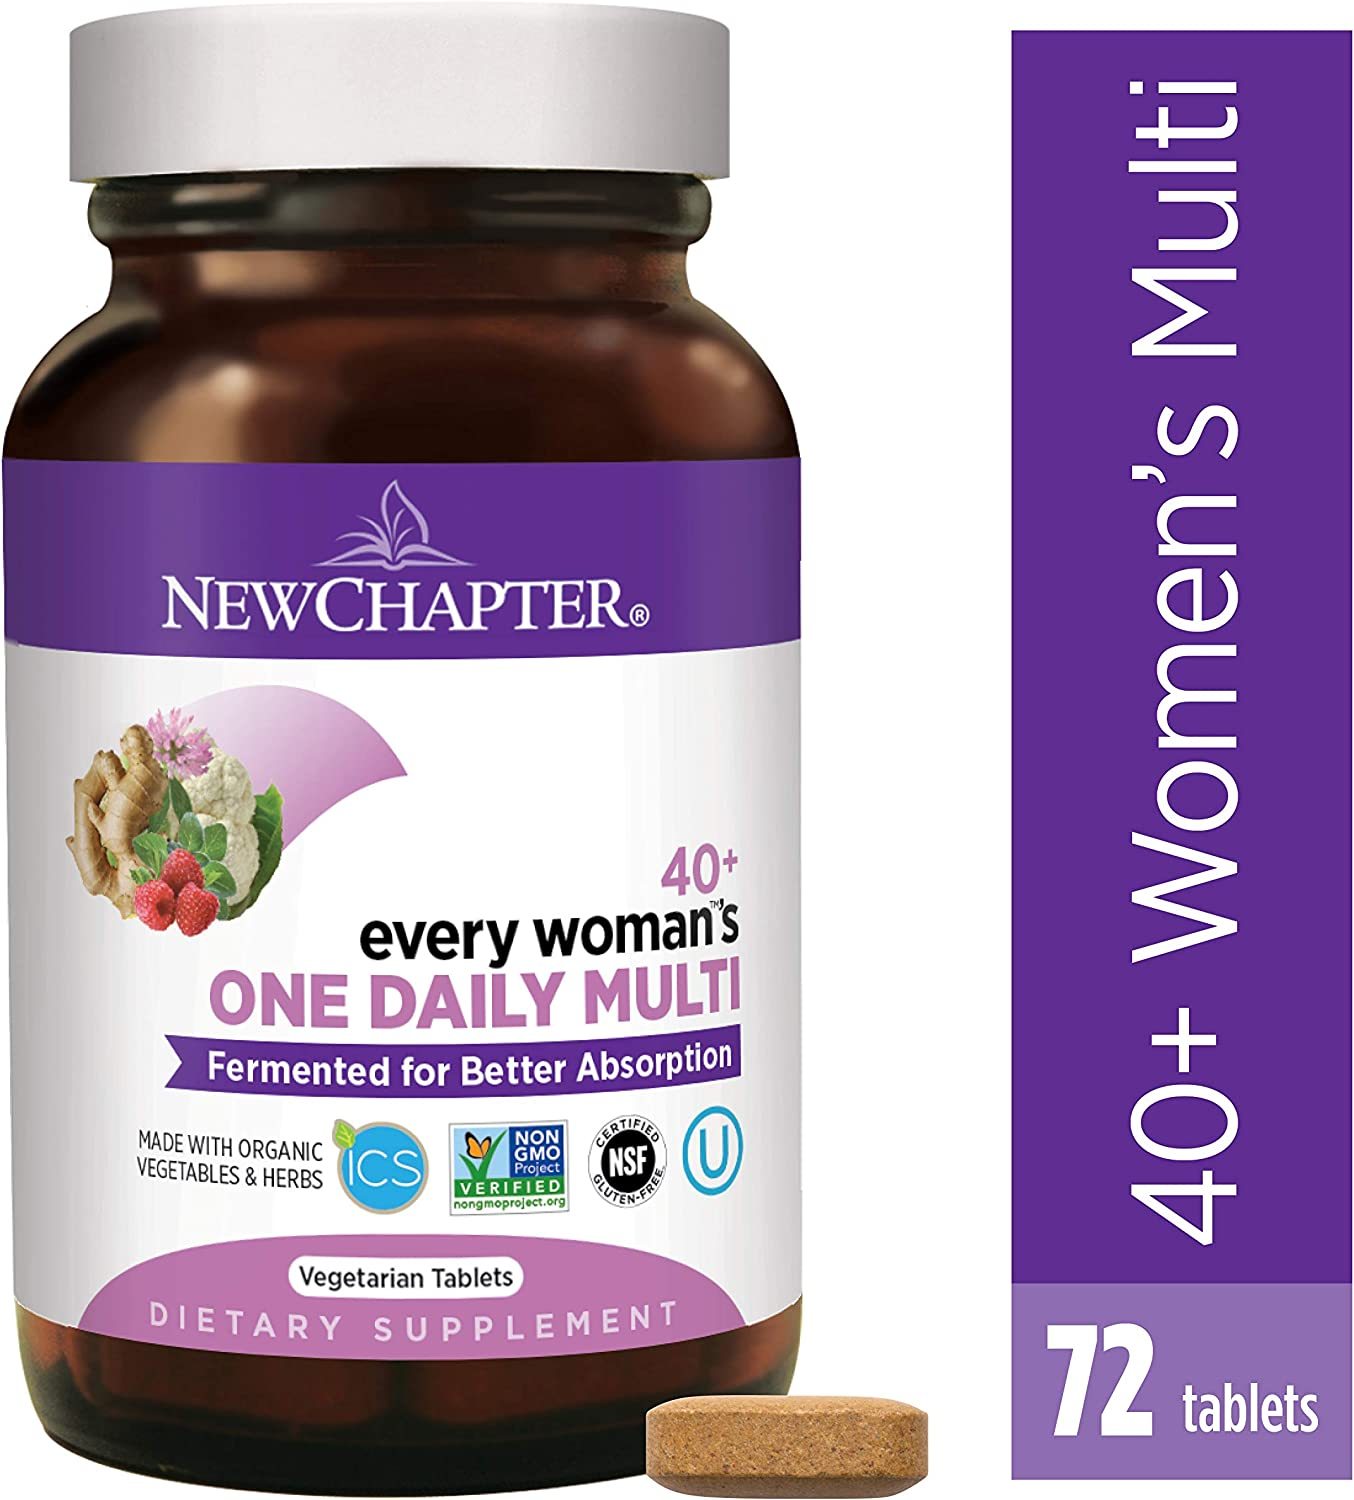 New Chapter Women s Multivitamin, Every Woman s One Daily 40 , Fermented with Probiotics Vitamin D3 B Vitamins Organic Non-GMO Ingredients – 72 ct Packaging May Vary